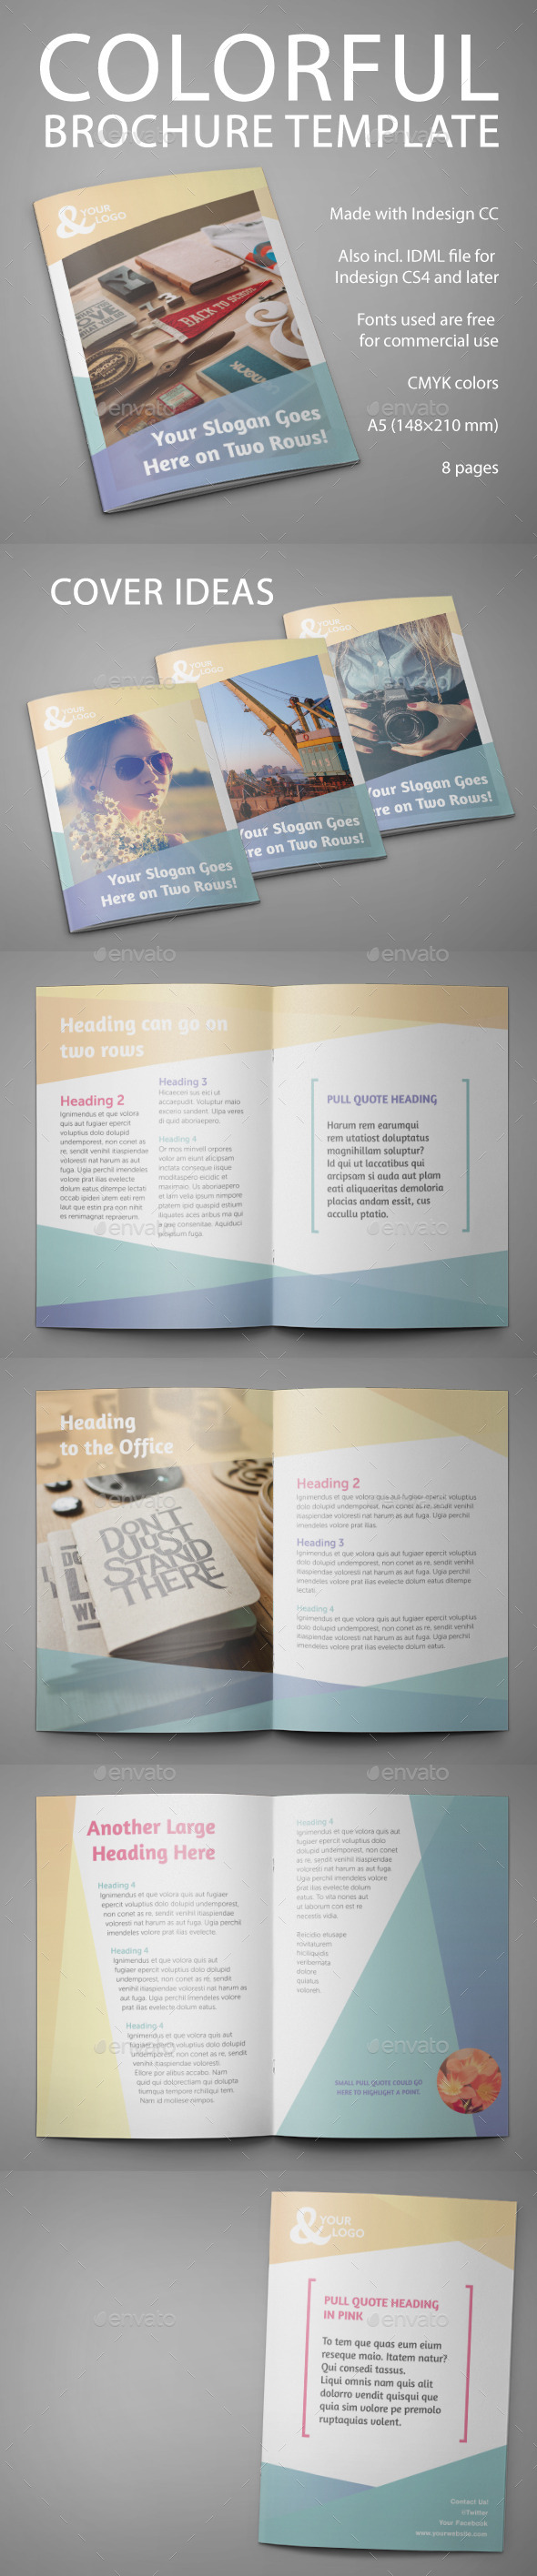 GraphicRiver Colorful Brochure Template 11220123